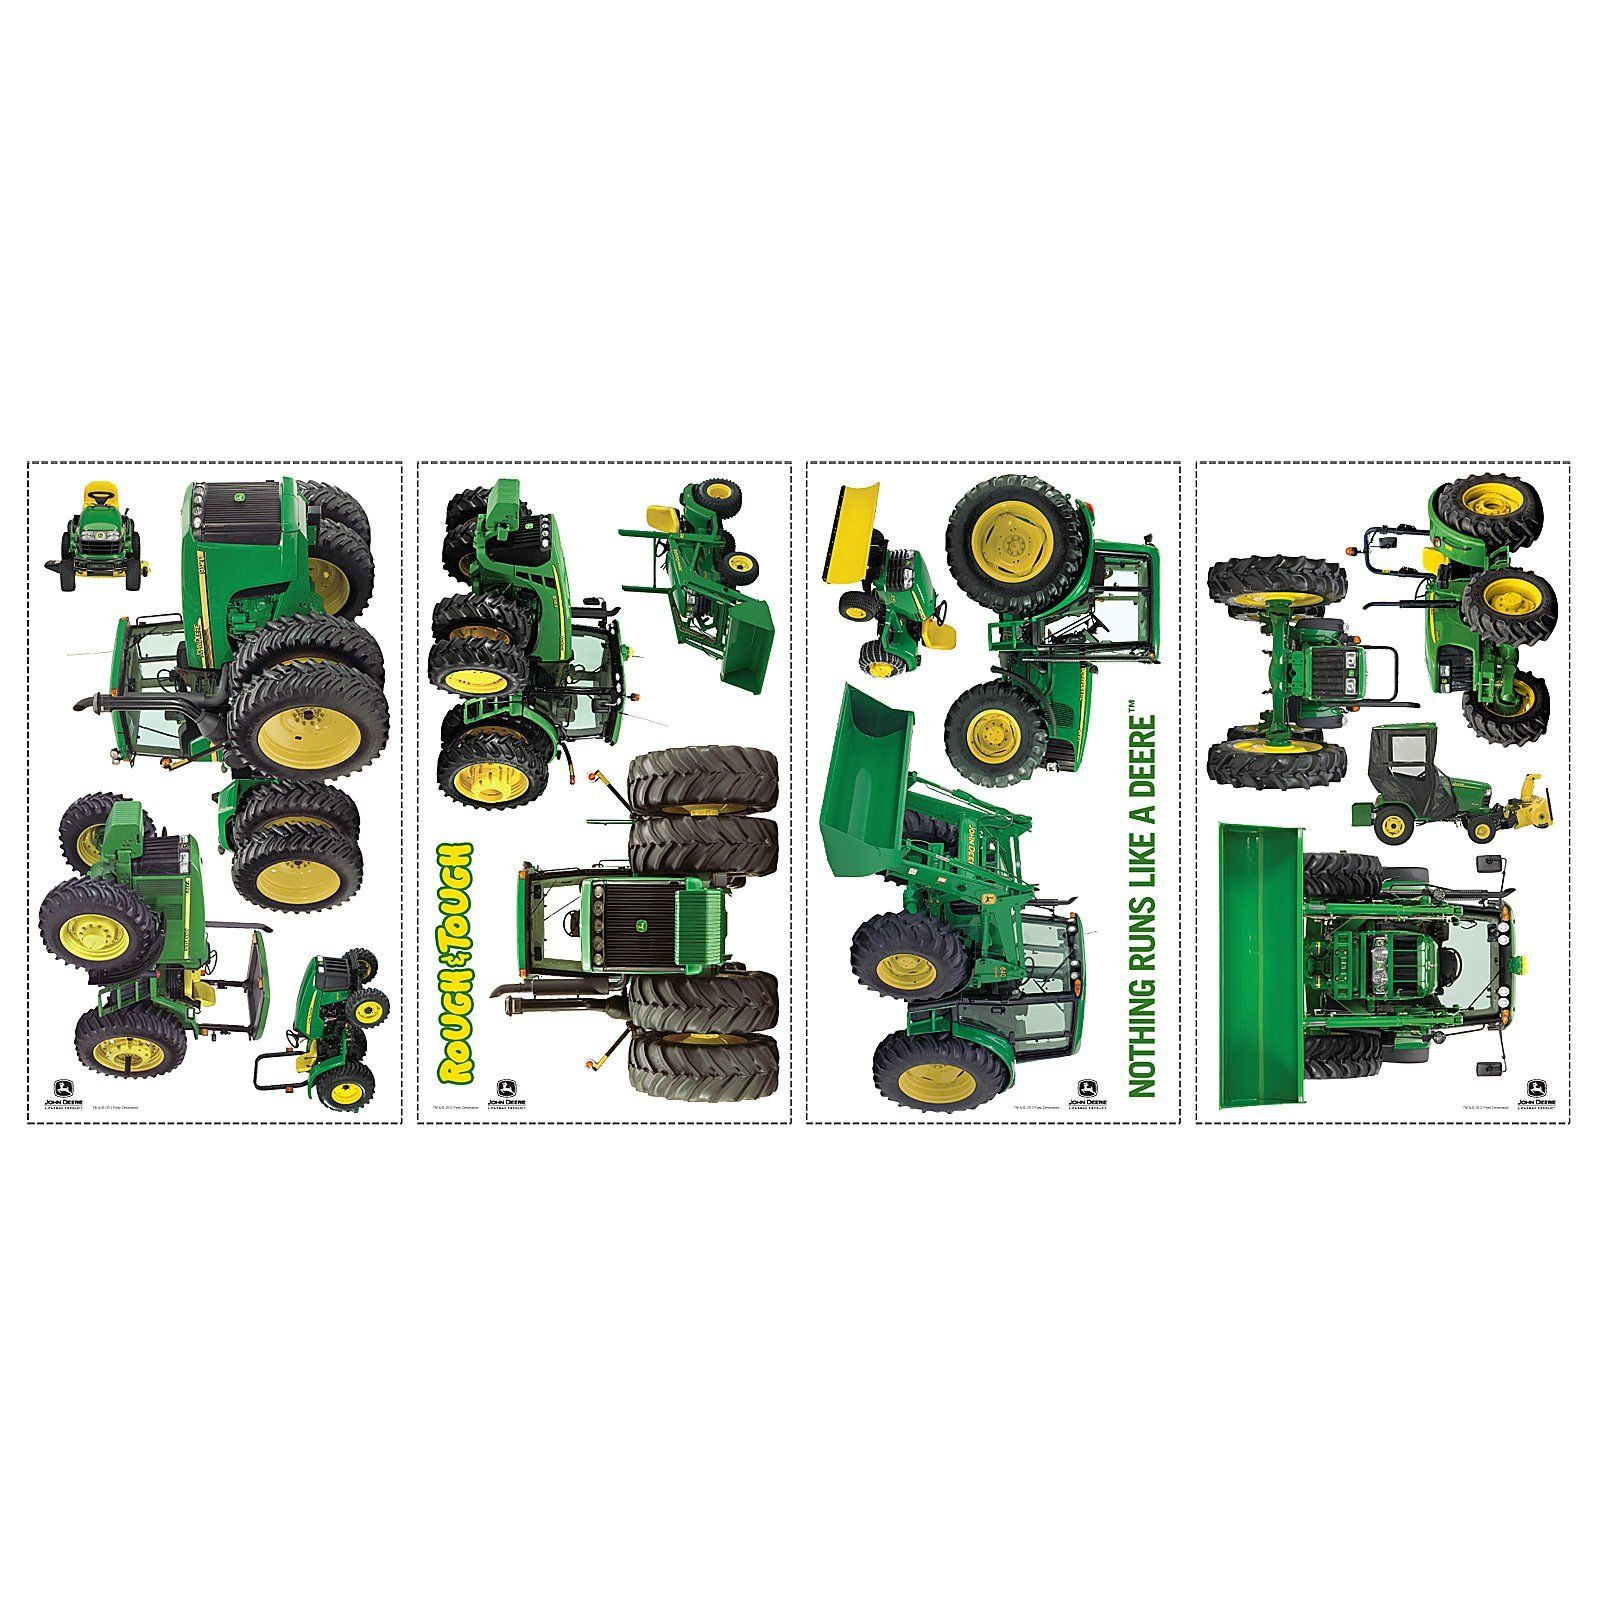 John Deere Removable Wall Decorations Chambres - John deere idees de decoration de chambre